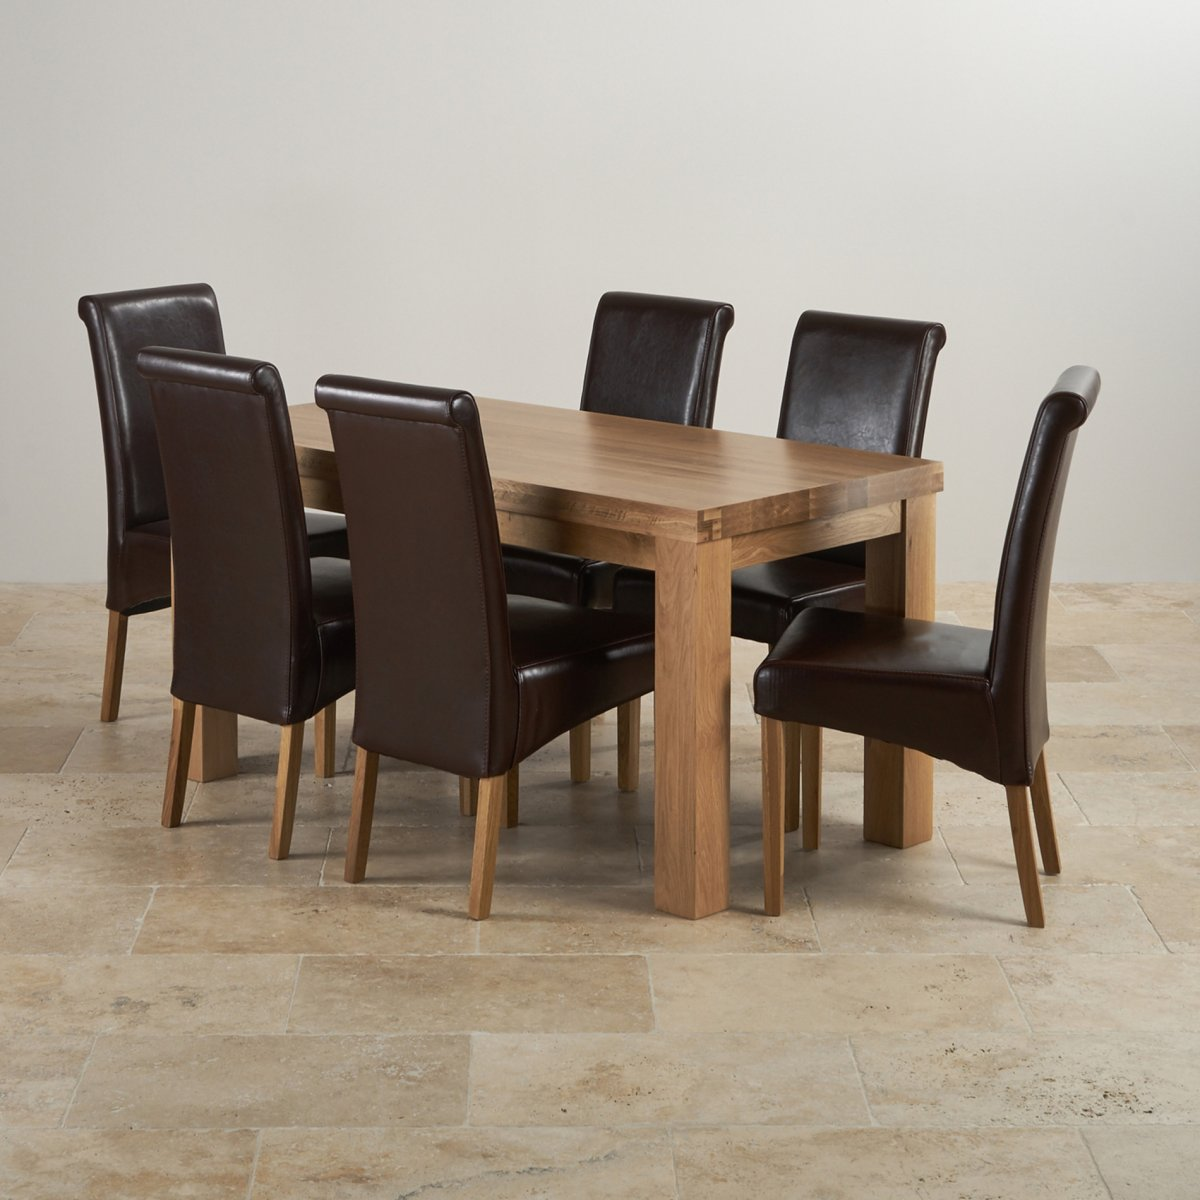 Contemporary Dining Set in Oak Table 6 Brown Leather Chairs : contemporary chunky natural solid oak dining set 5ft table with 6 scroll back brown leather chairs 56f5523a63c1845b70c5de1a403e6377bd159dd538056 from www.oakfurnitureland.co.uk size 1200 x 1200 jpeg 144kB